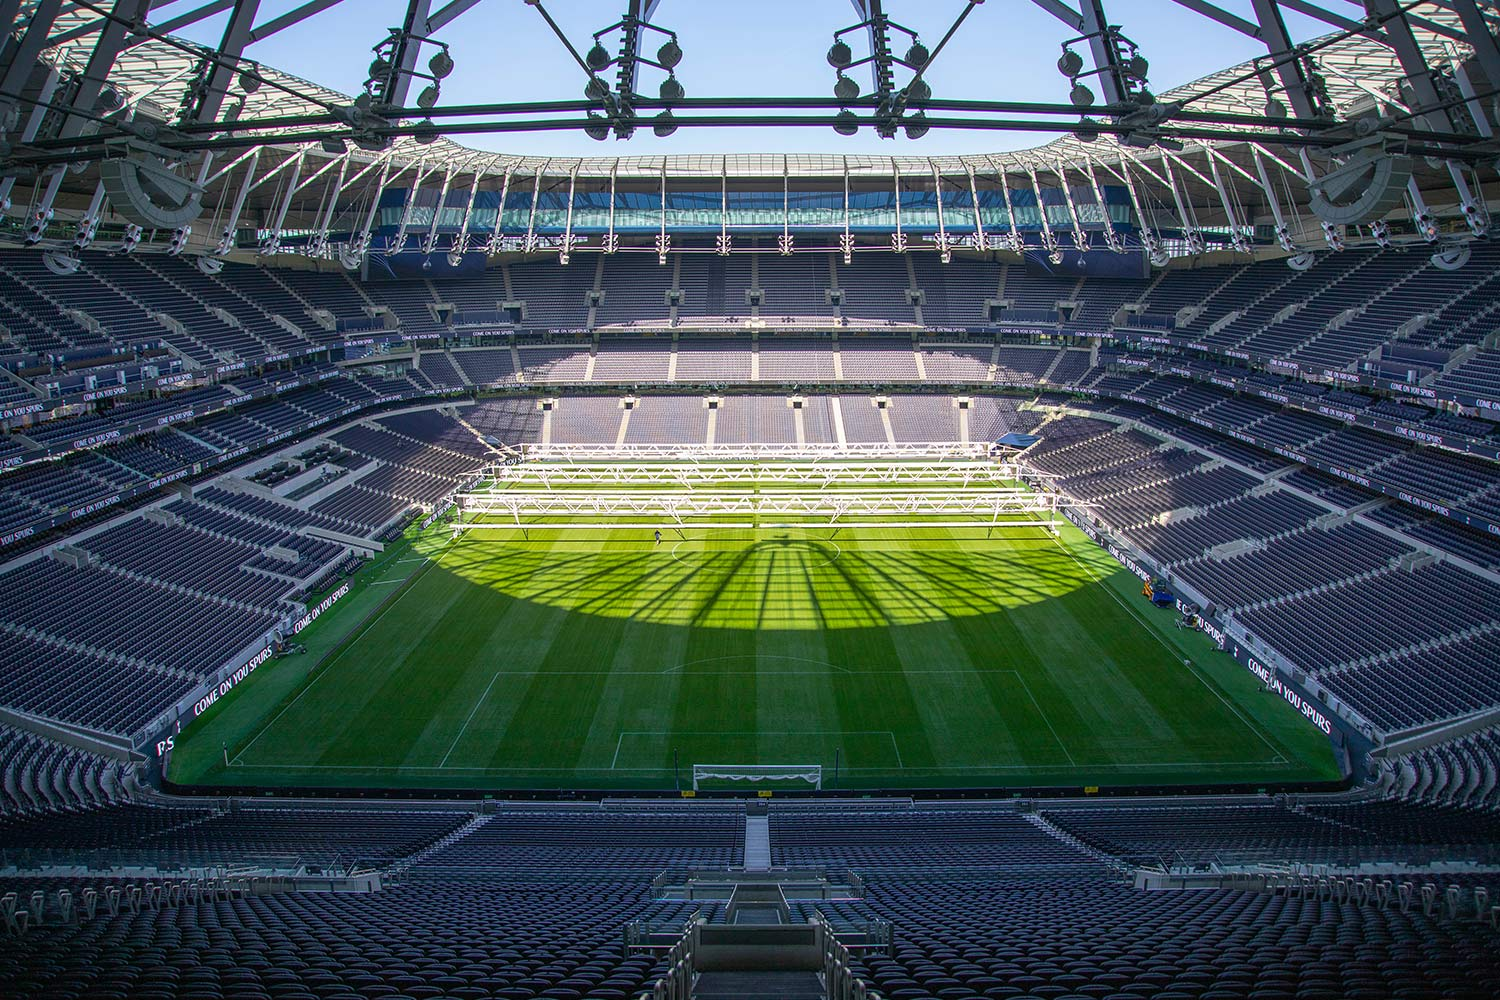 Inside Tottenham Hotspur S New Stadium Buro Happold